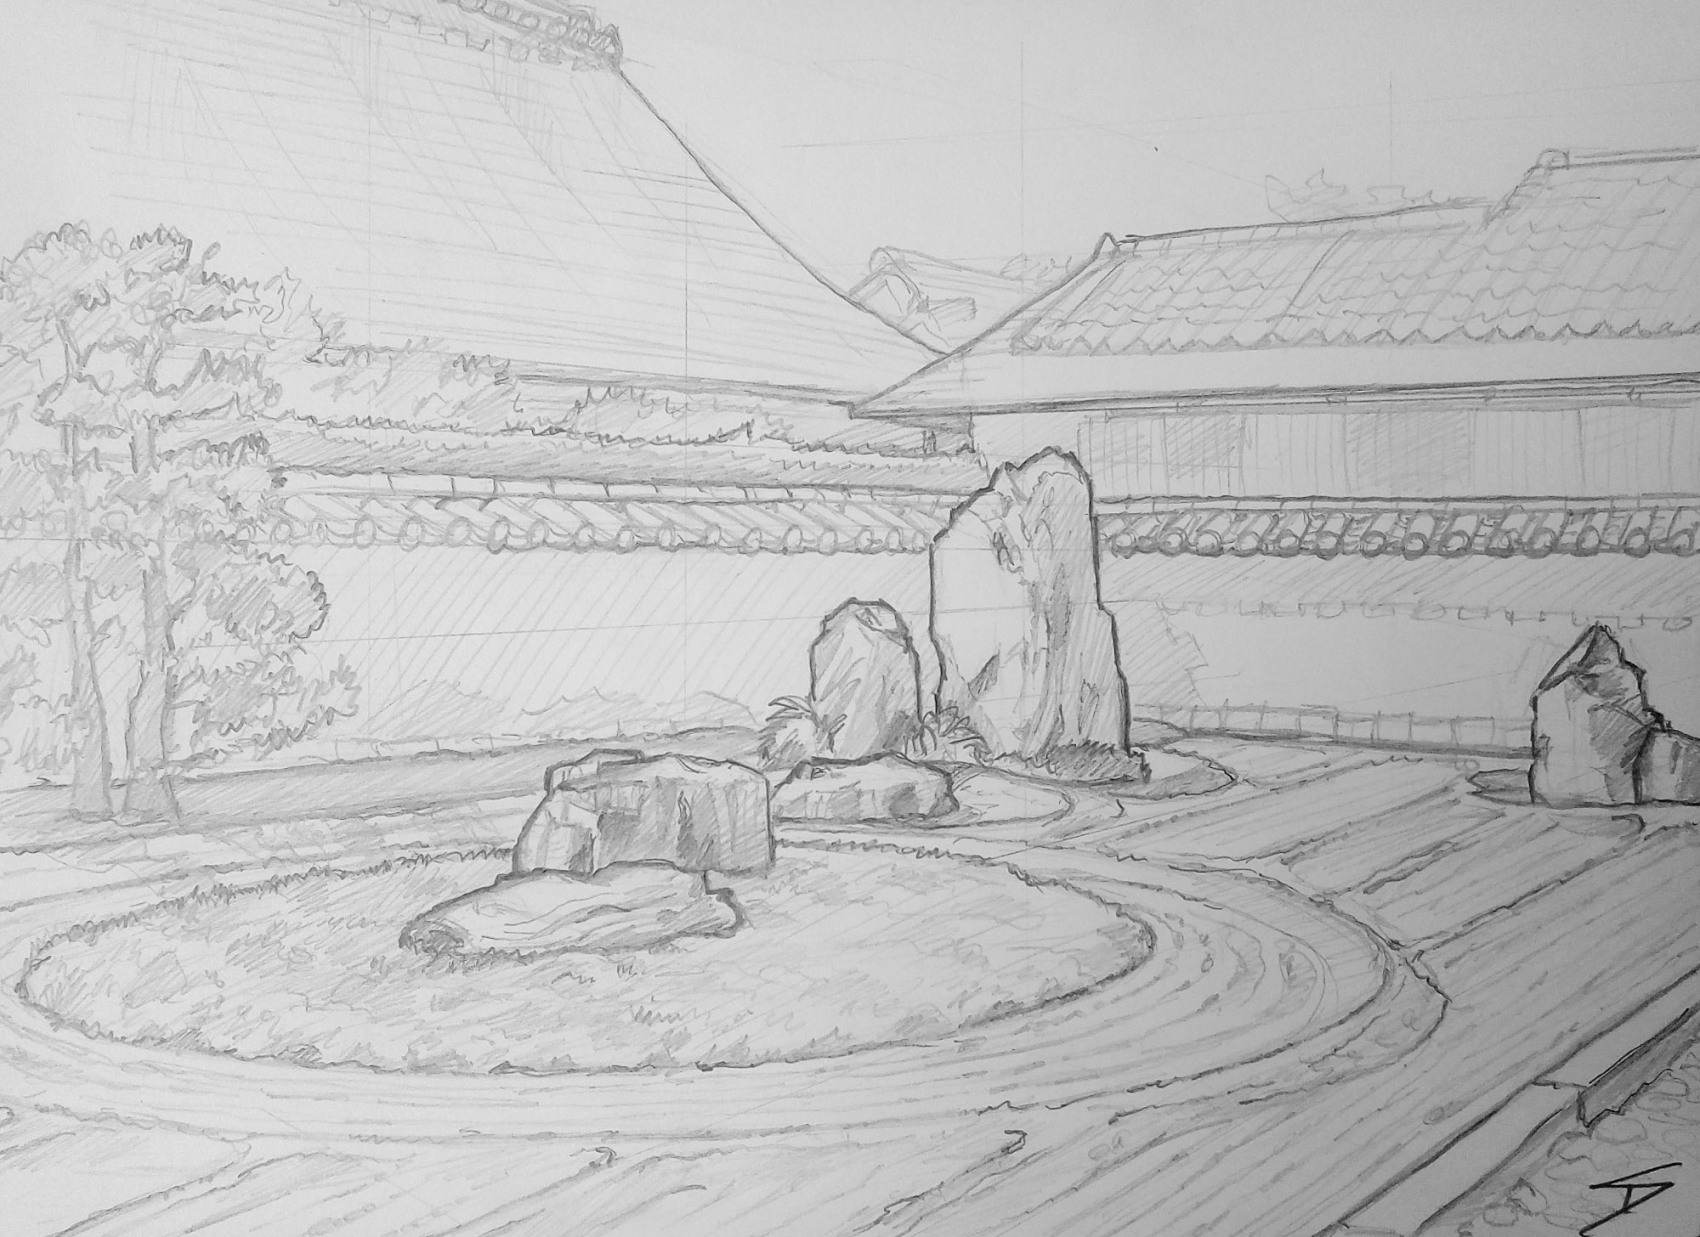 Urban art – Murasakino, Kyoto, Japan. 'Ryogen-in Temple.' Artwork from my latest travel art blog article 'Sakura Japan.' Now online - sketchbookexplorer.com @davidasutton @sketchbookexplorer Facebook.com/davidanthonysutton #sketch #drawing #art #japan #Kyoto #Ryogenintemple #zengarden #meditation #travel #travelblog #cherryblossom #cherryblossomseason #cherryblossomjapan